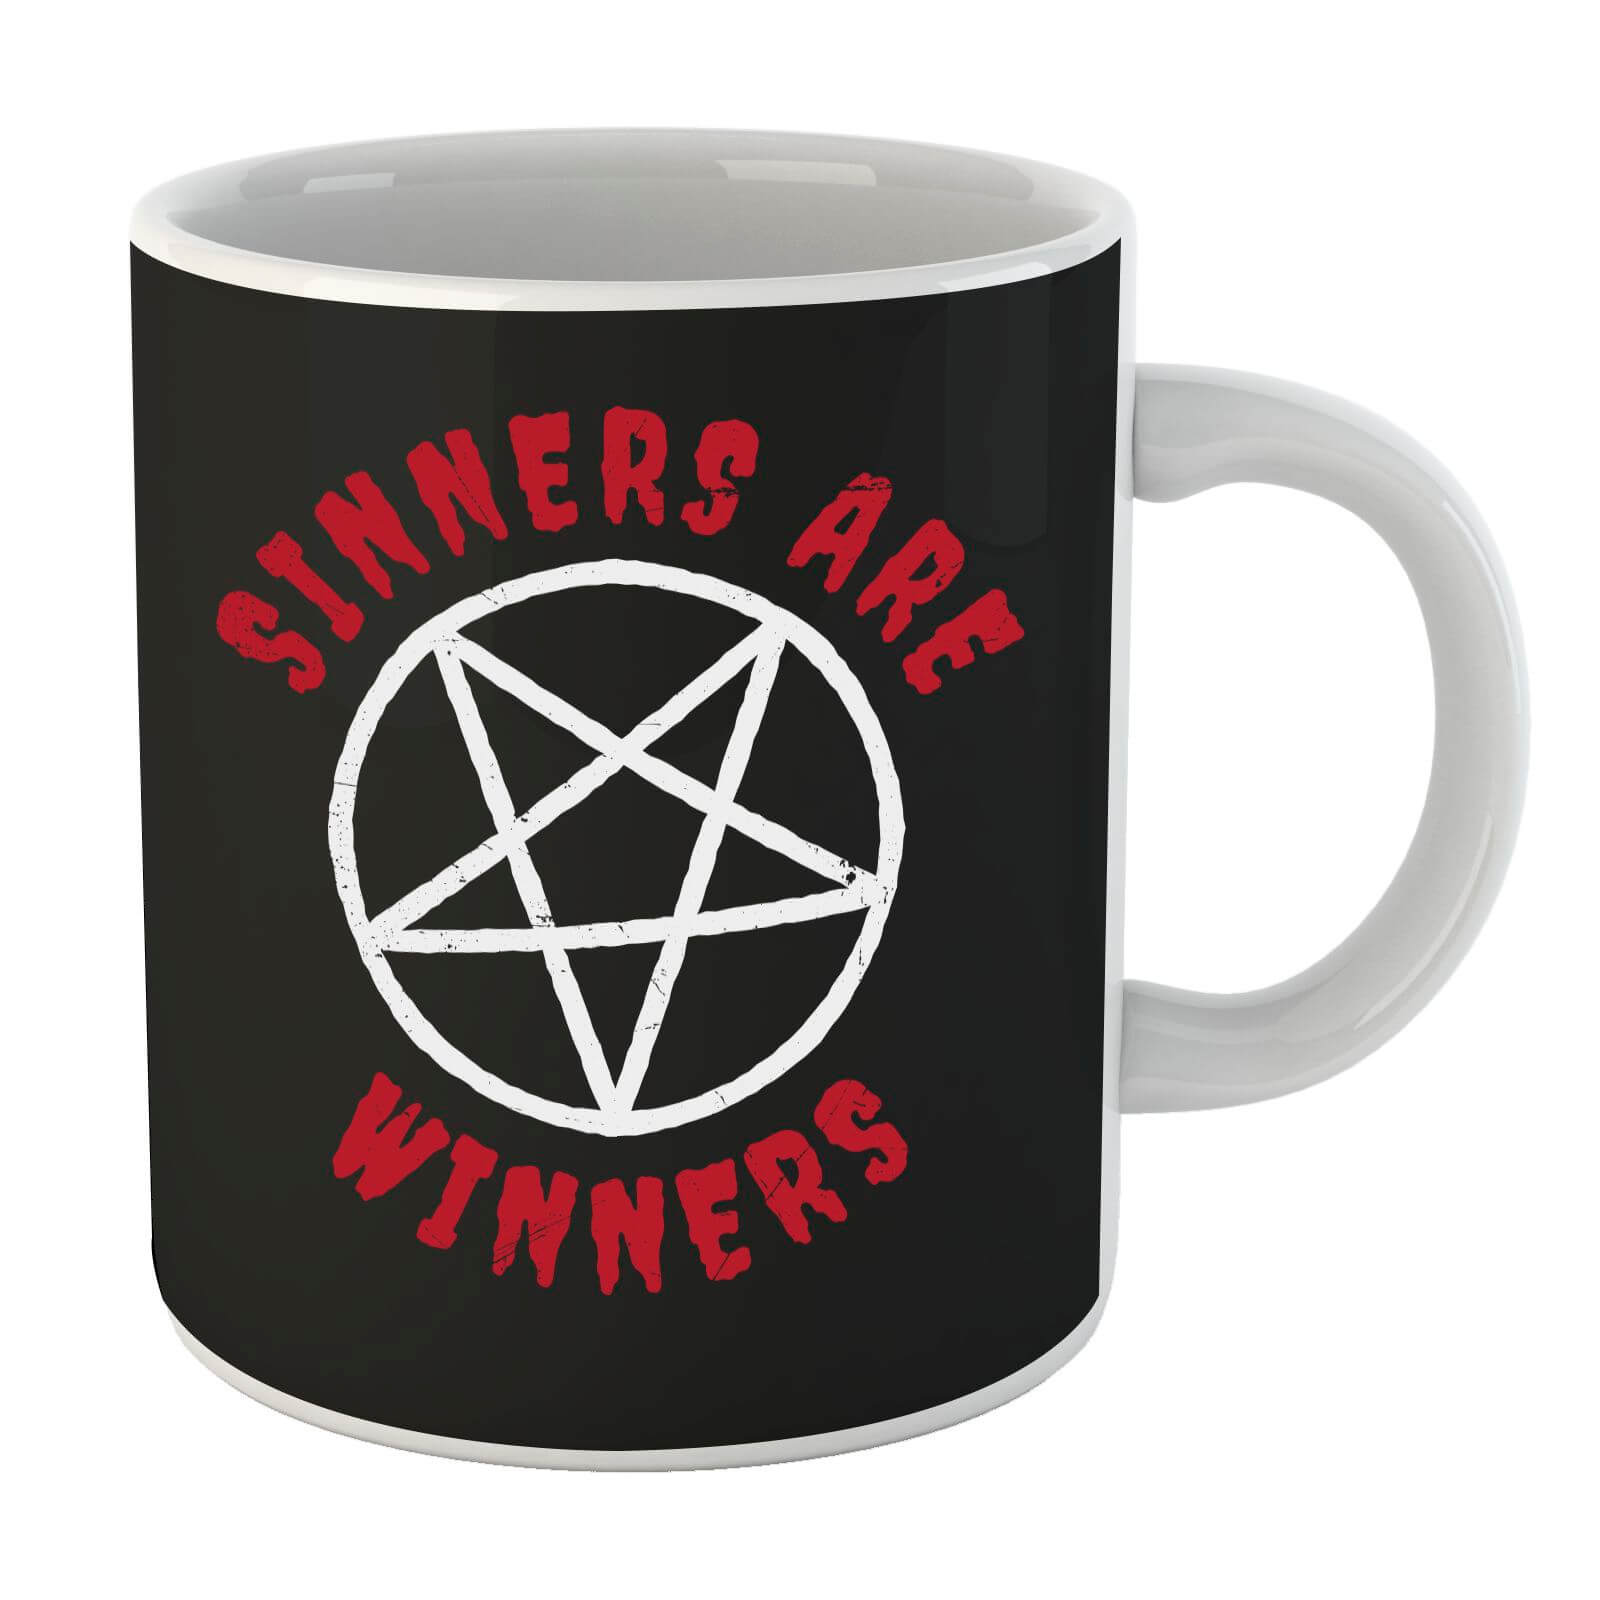 Sinners Are Winners Mug